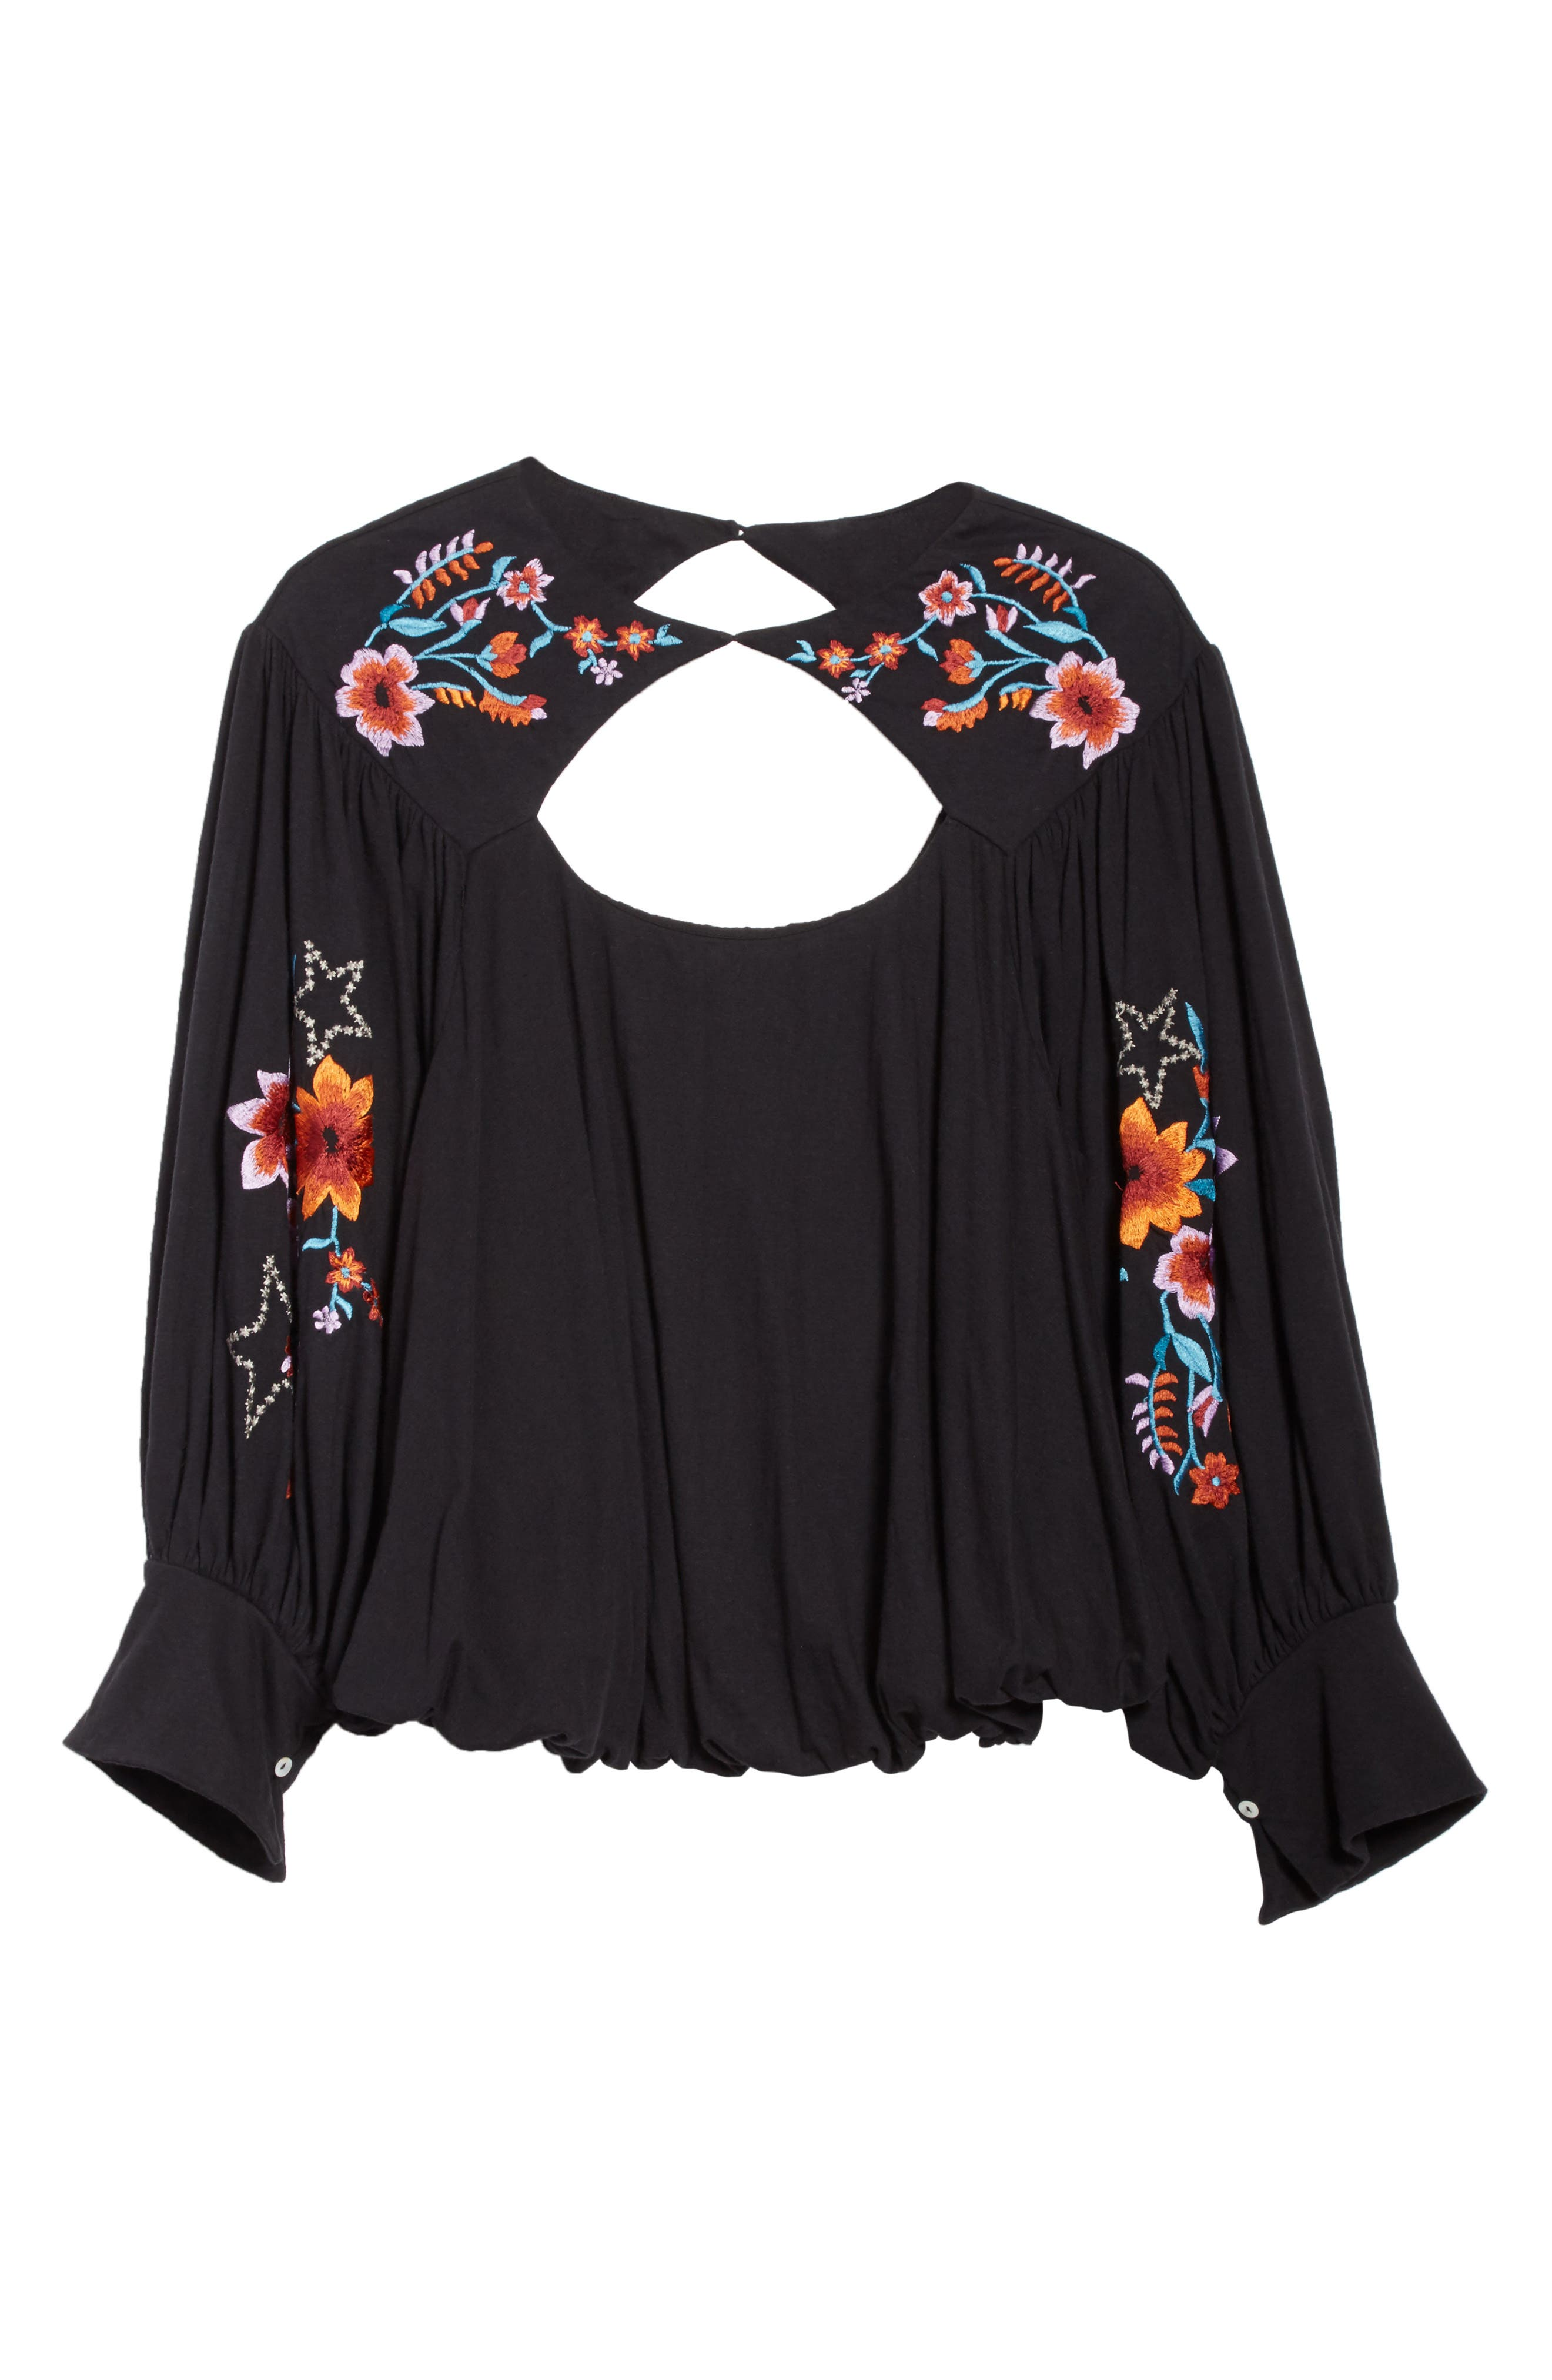 FREE PEOPLE,                             Lita Embroidered Bell Sleeve Top,                             Alternate thumbnail 6, color,                             001